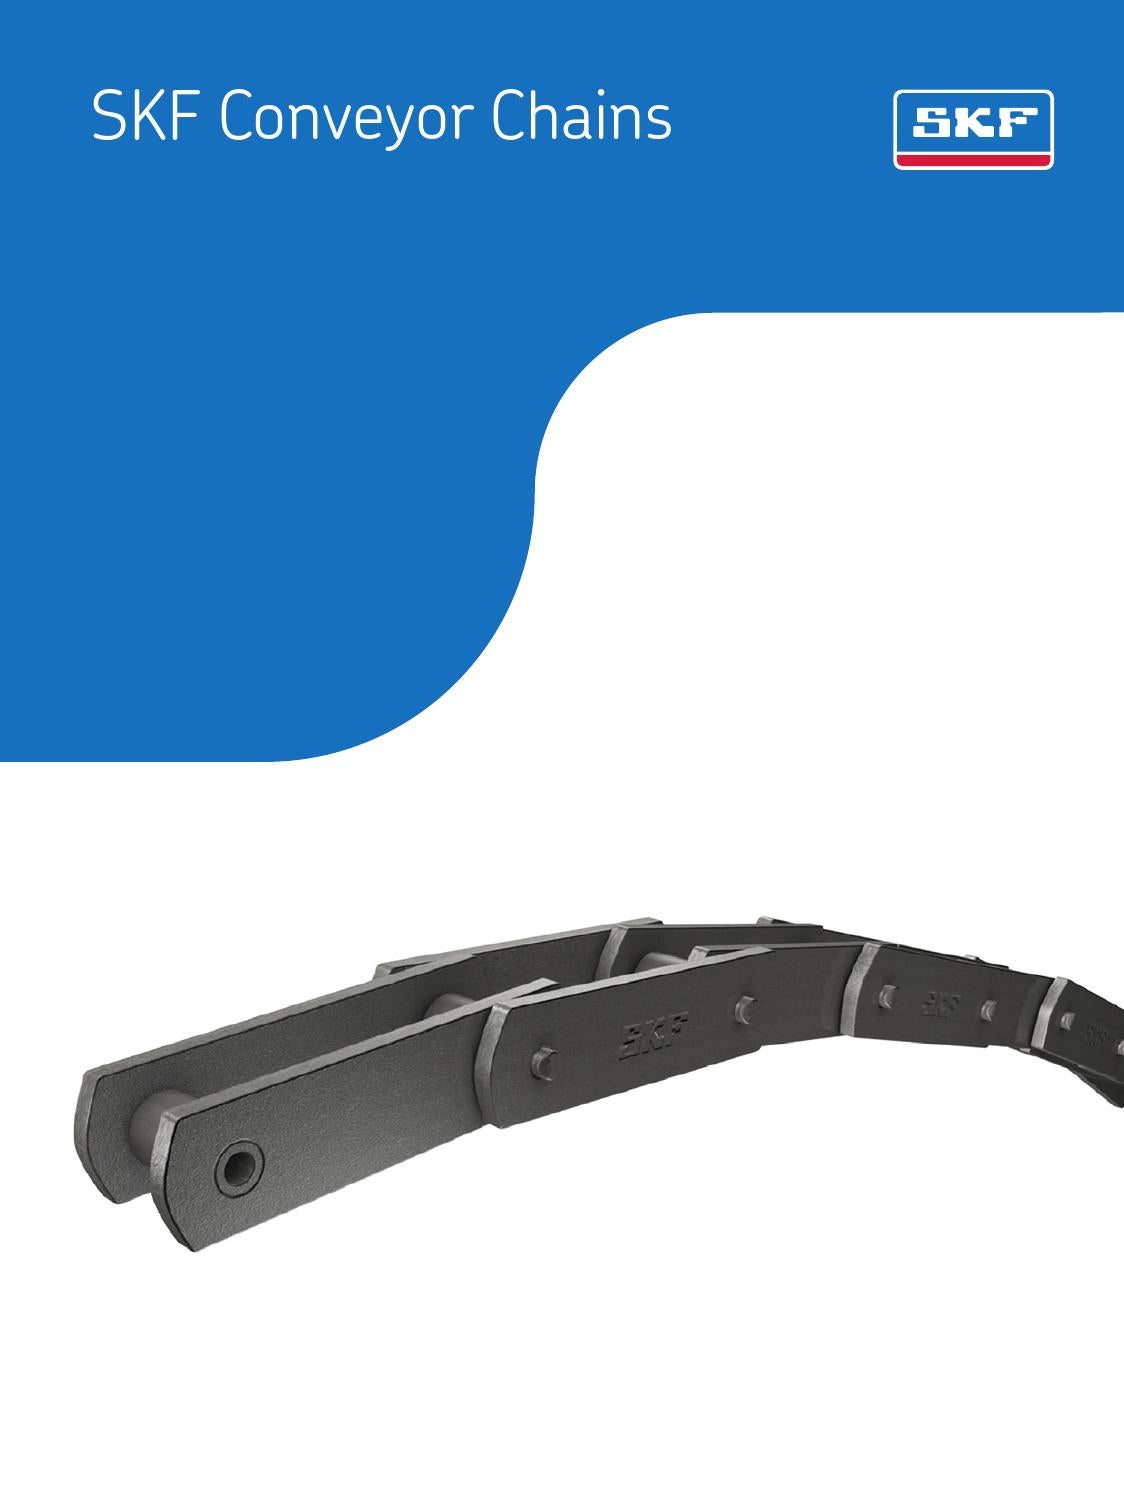 SKF 60-2X10FT ANSI Riveted Roller Chain